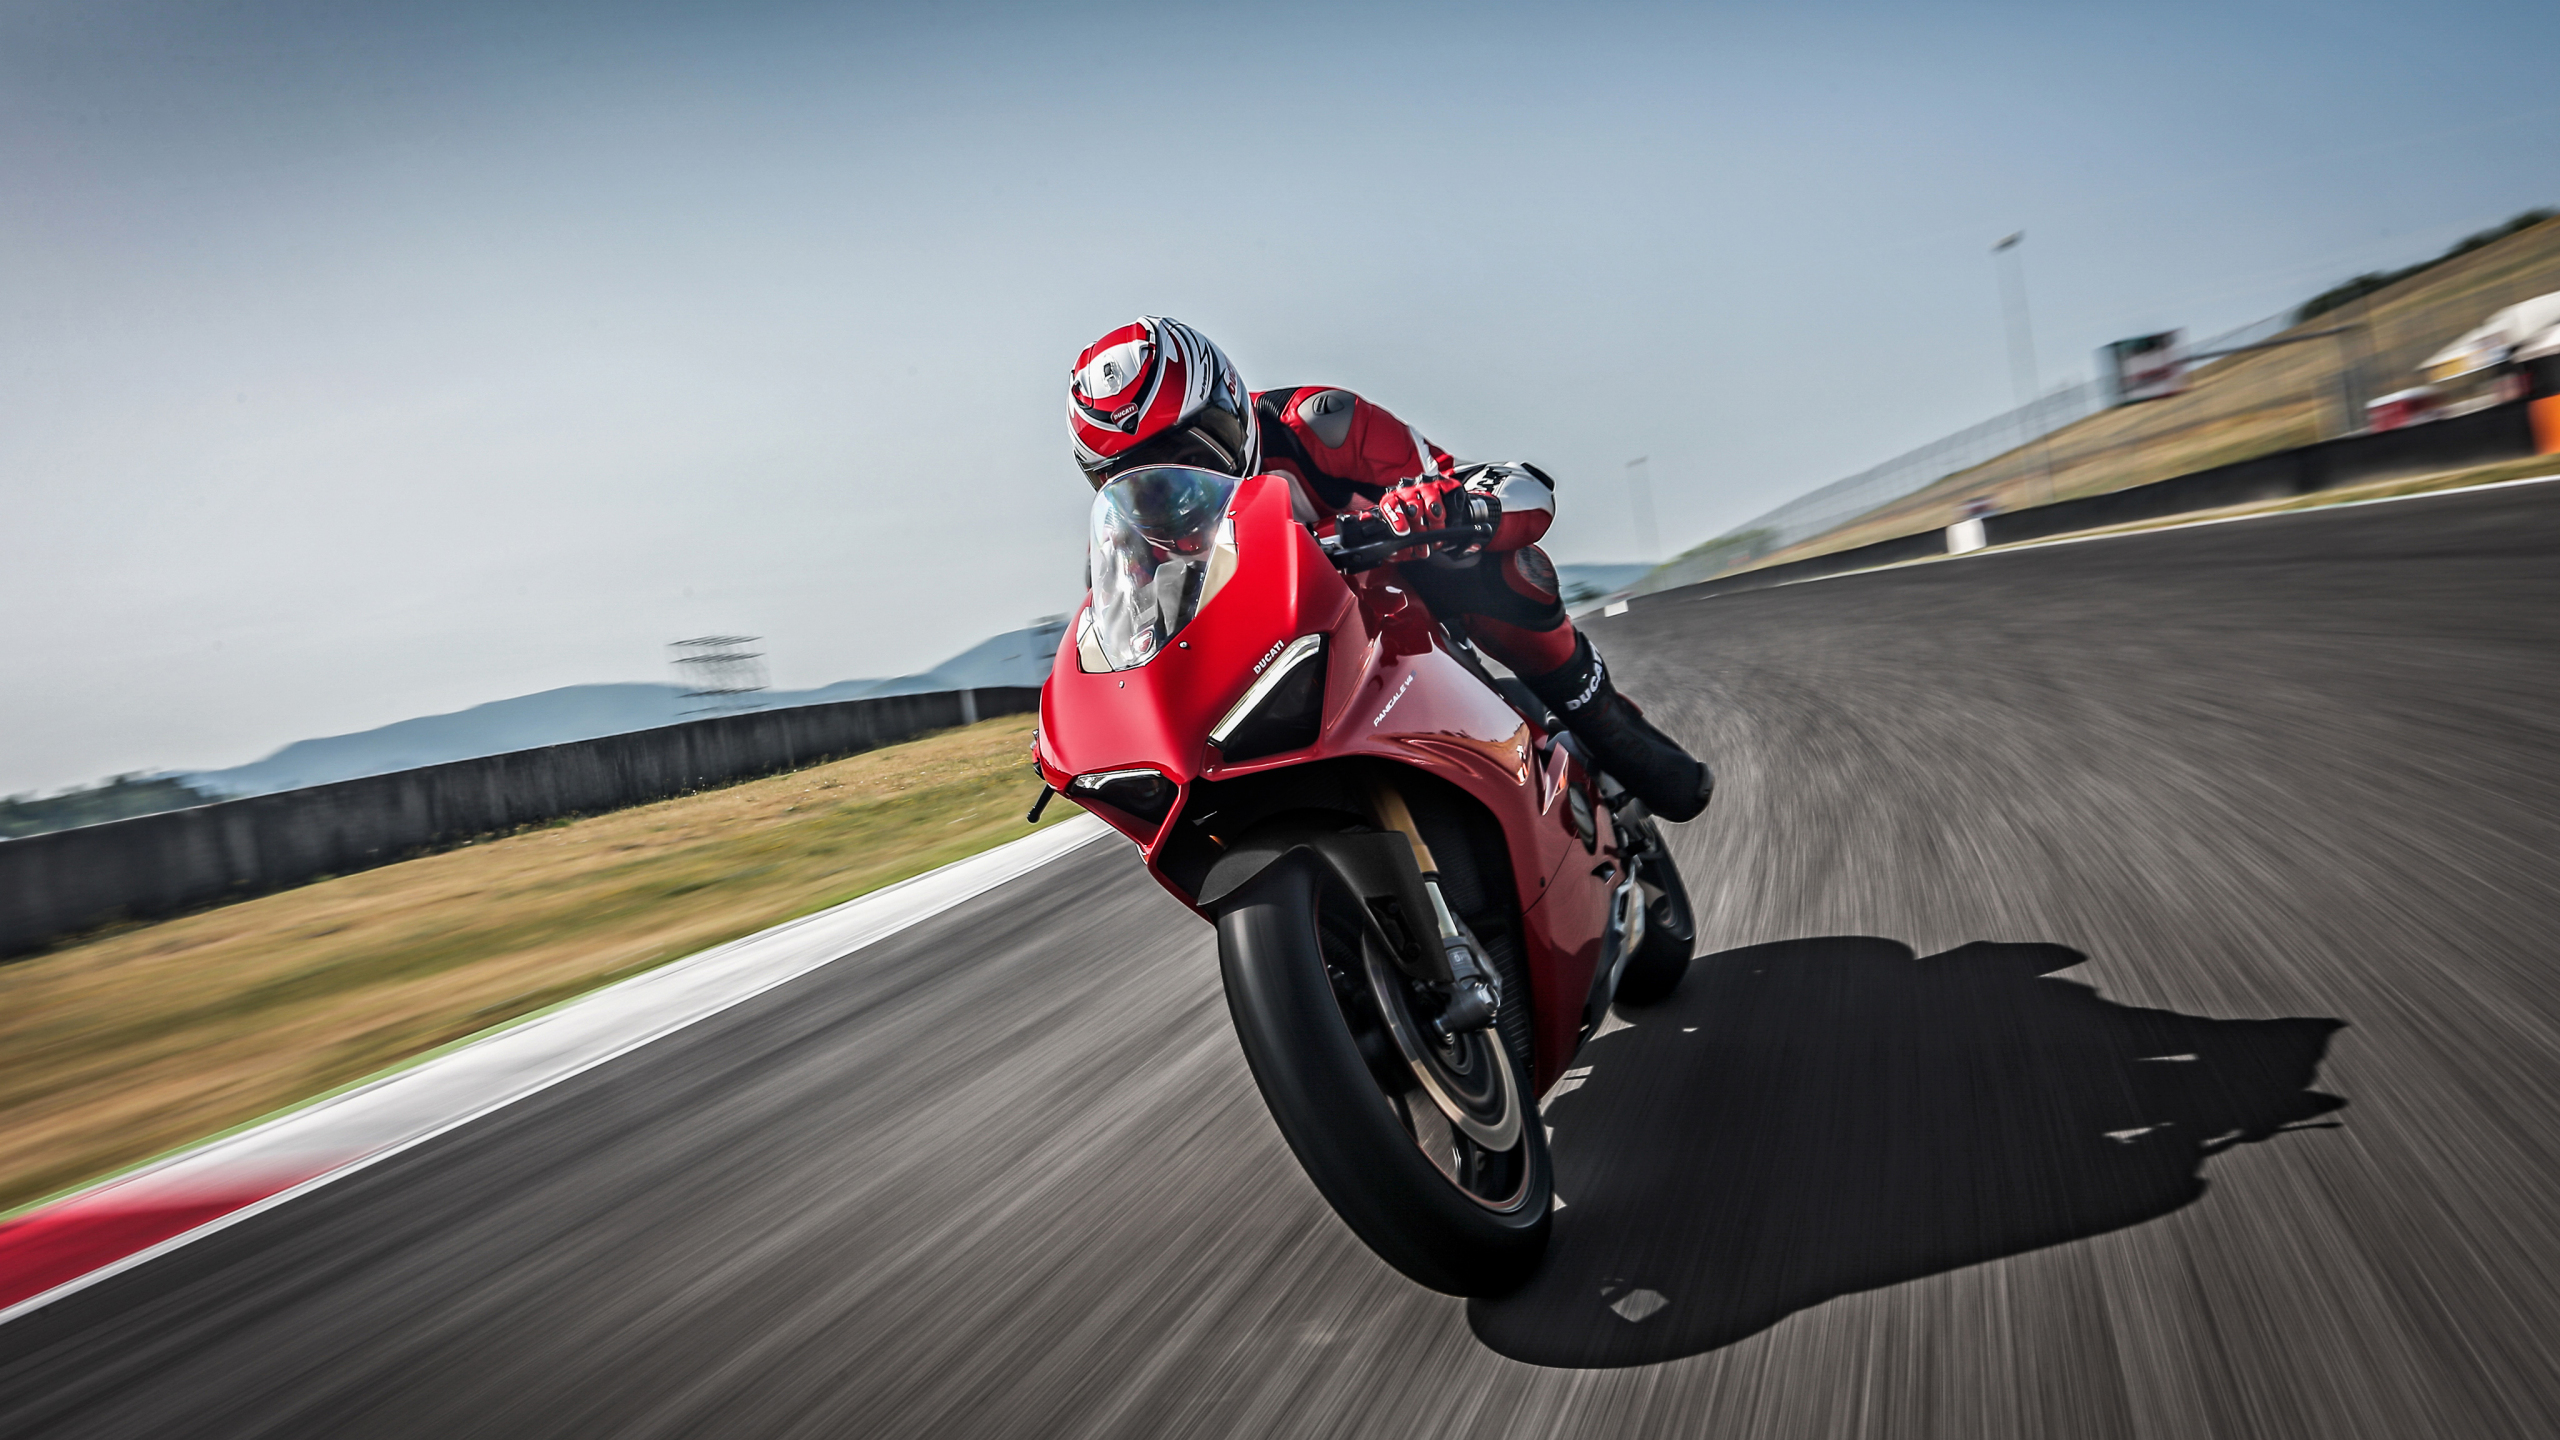 Ducati panigale v4, speciale, 2018, racing bike, 2560x1440 wallpaper